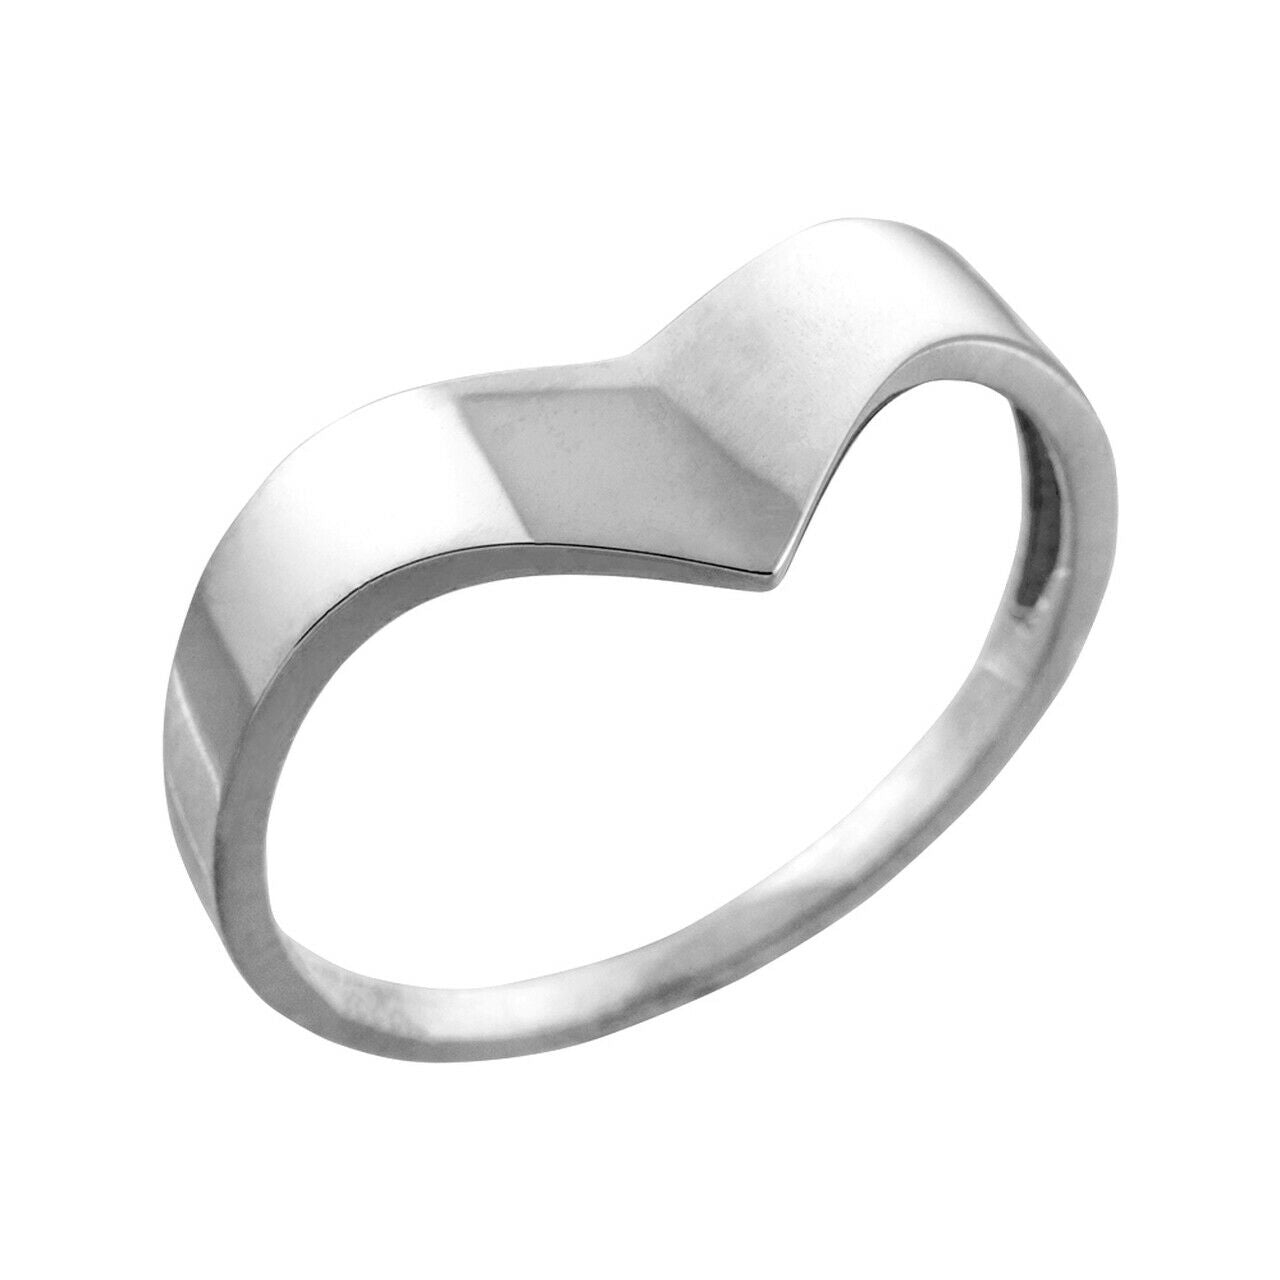 Fine Solid Sterling Silver Chevron Ring for Ladies Women - All / Any Sizes